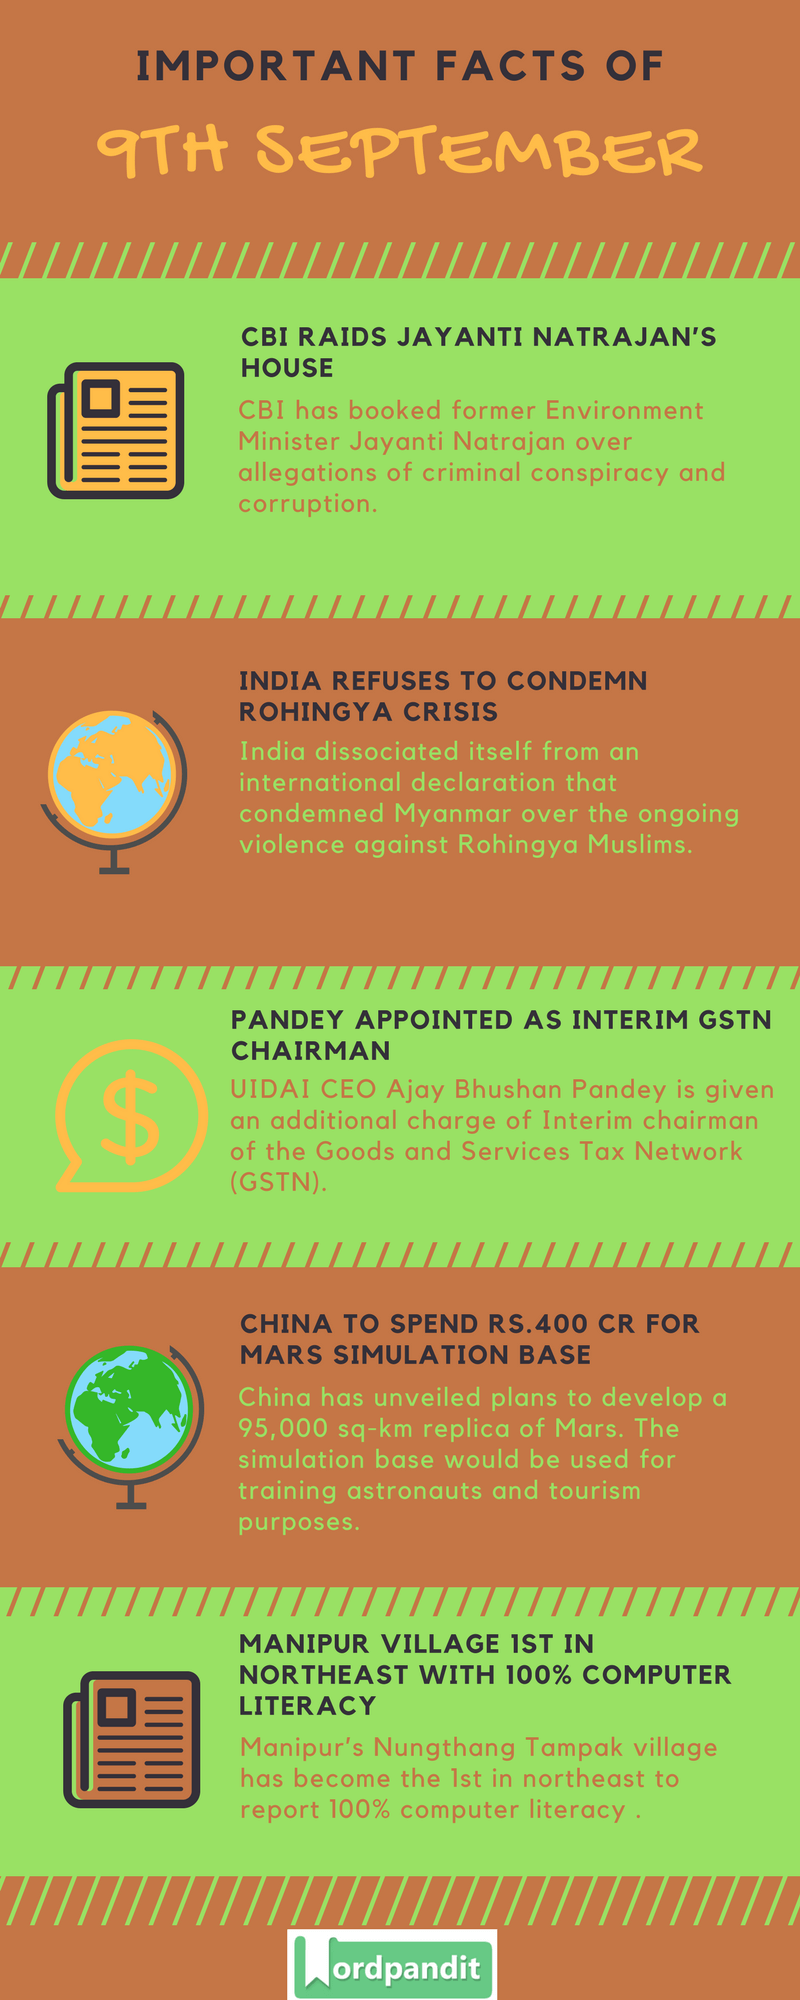 Daily-Current-Affairs-9-september-2017-Current-Affairs-Quiz-september-9-2017-Current-Affairs-Infographic